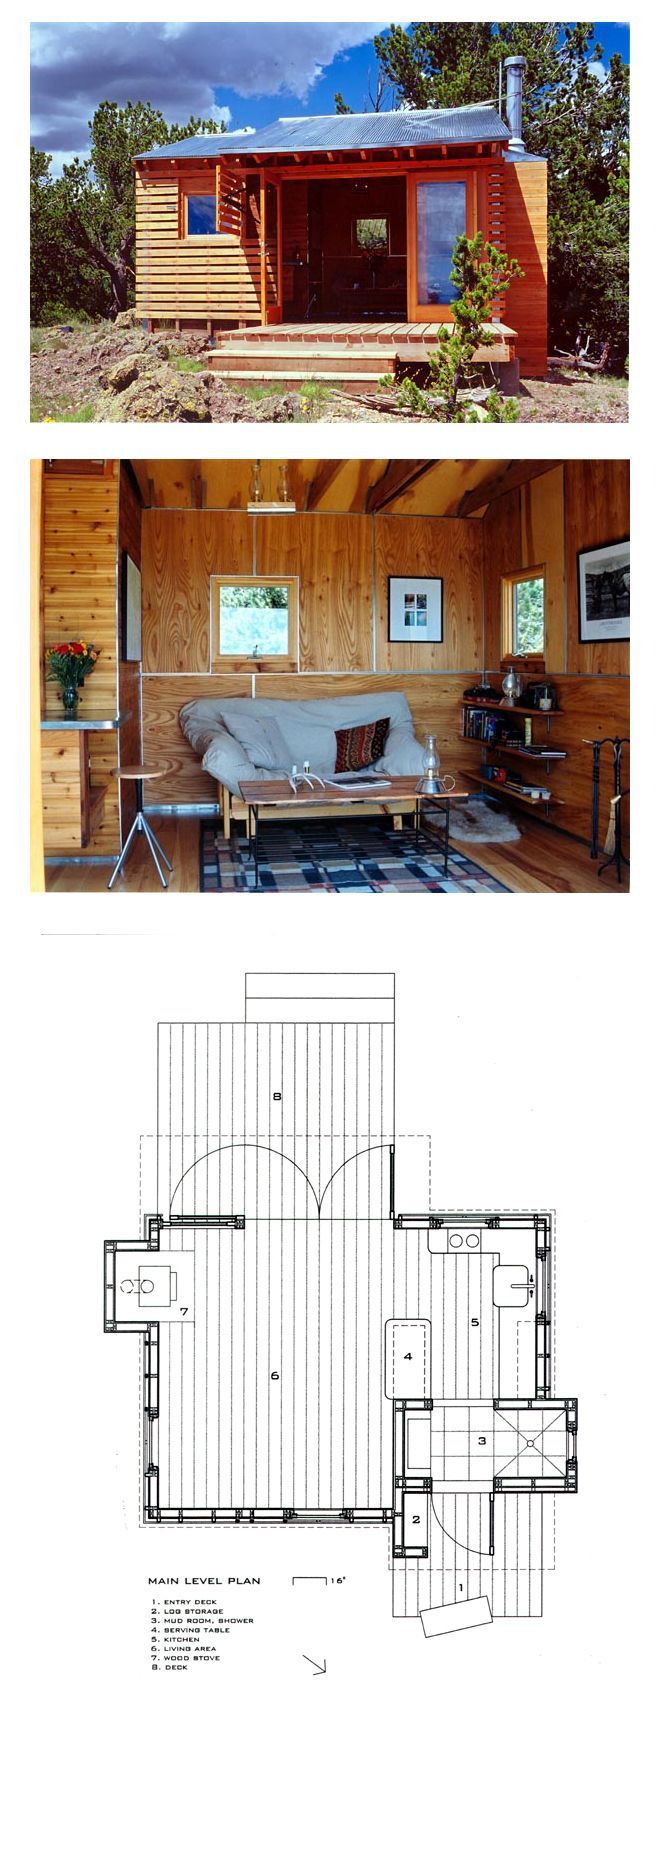 49 Best Images About Tiny Micro House Plans On Pinterest